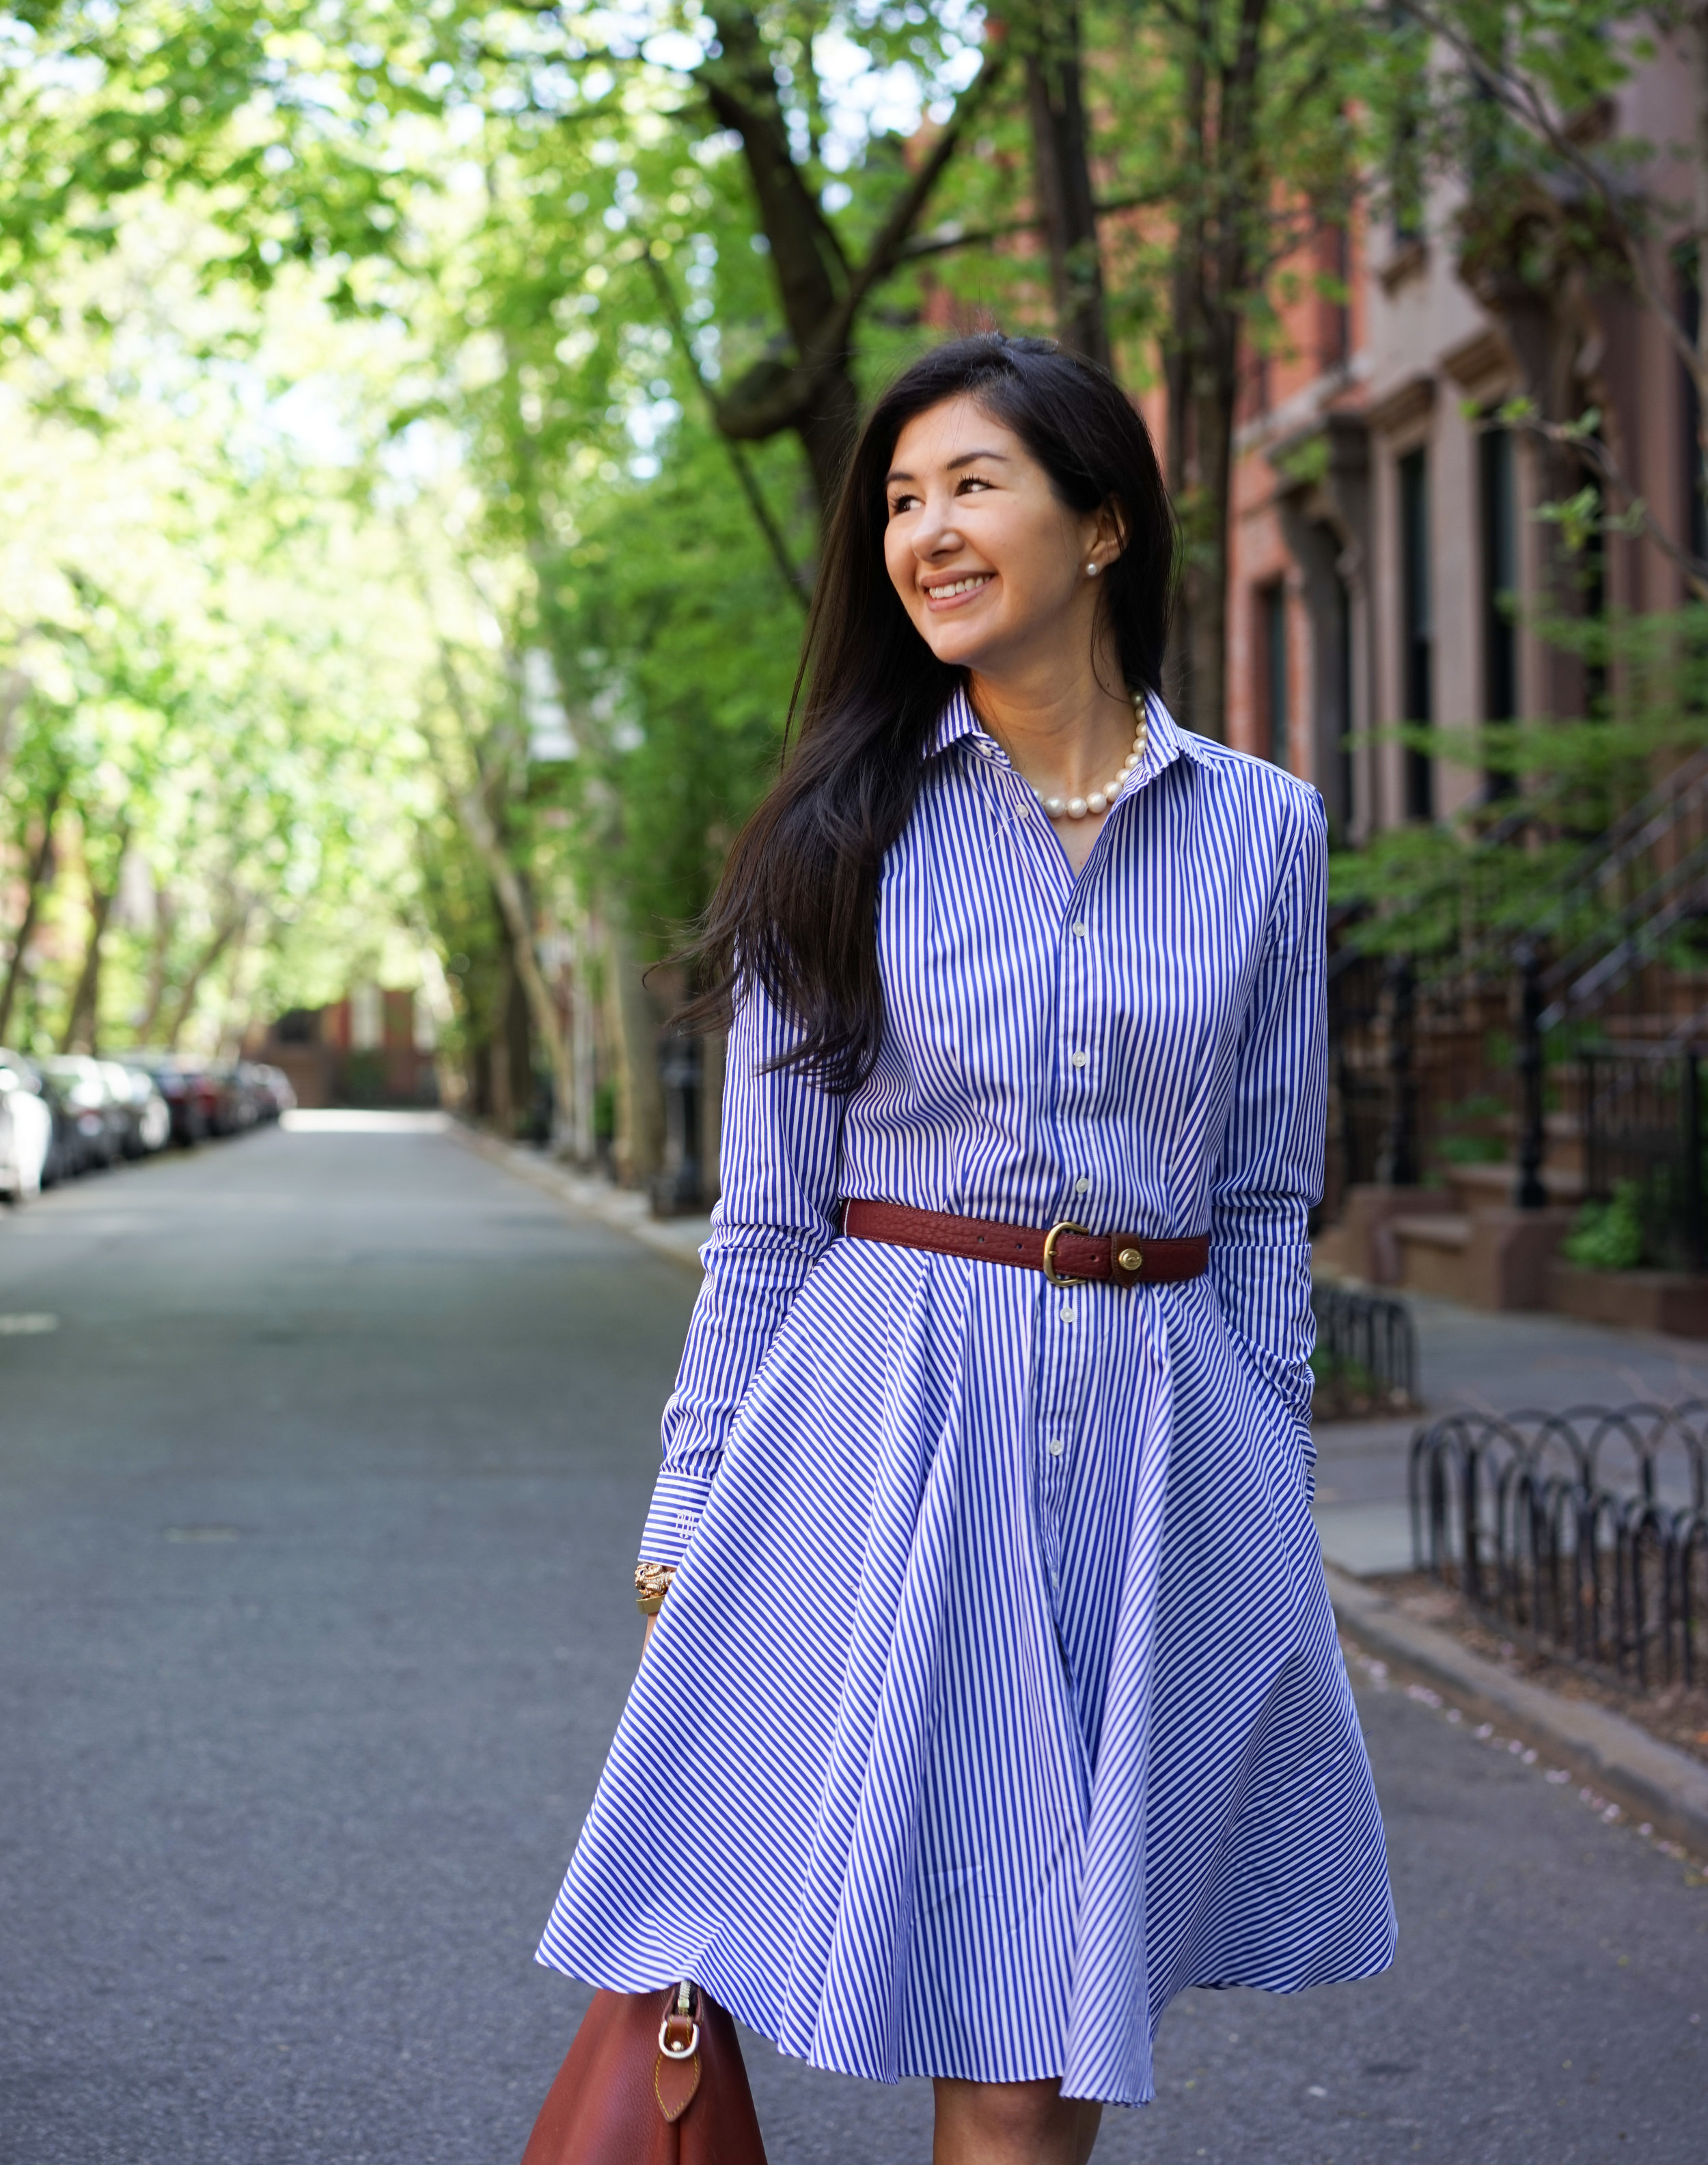 Ralph_Lauren_Shirtdress_New York_NYC.jpg